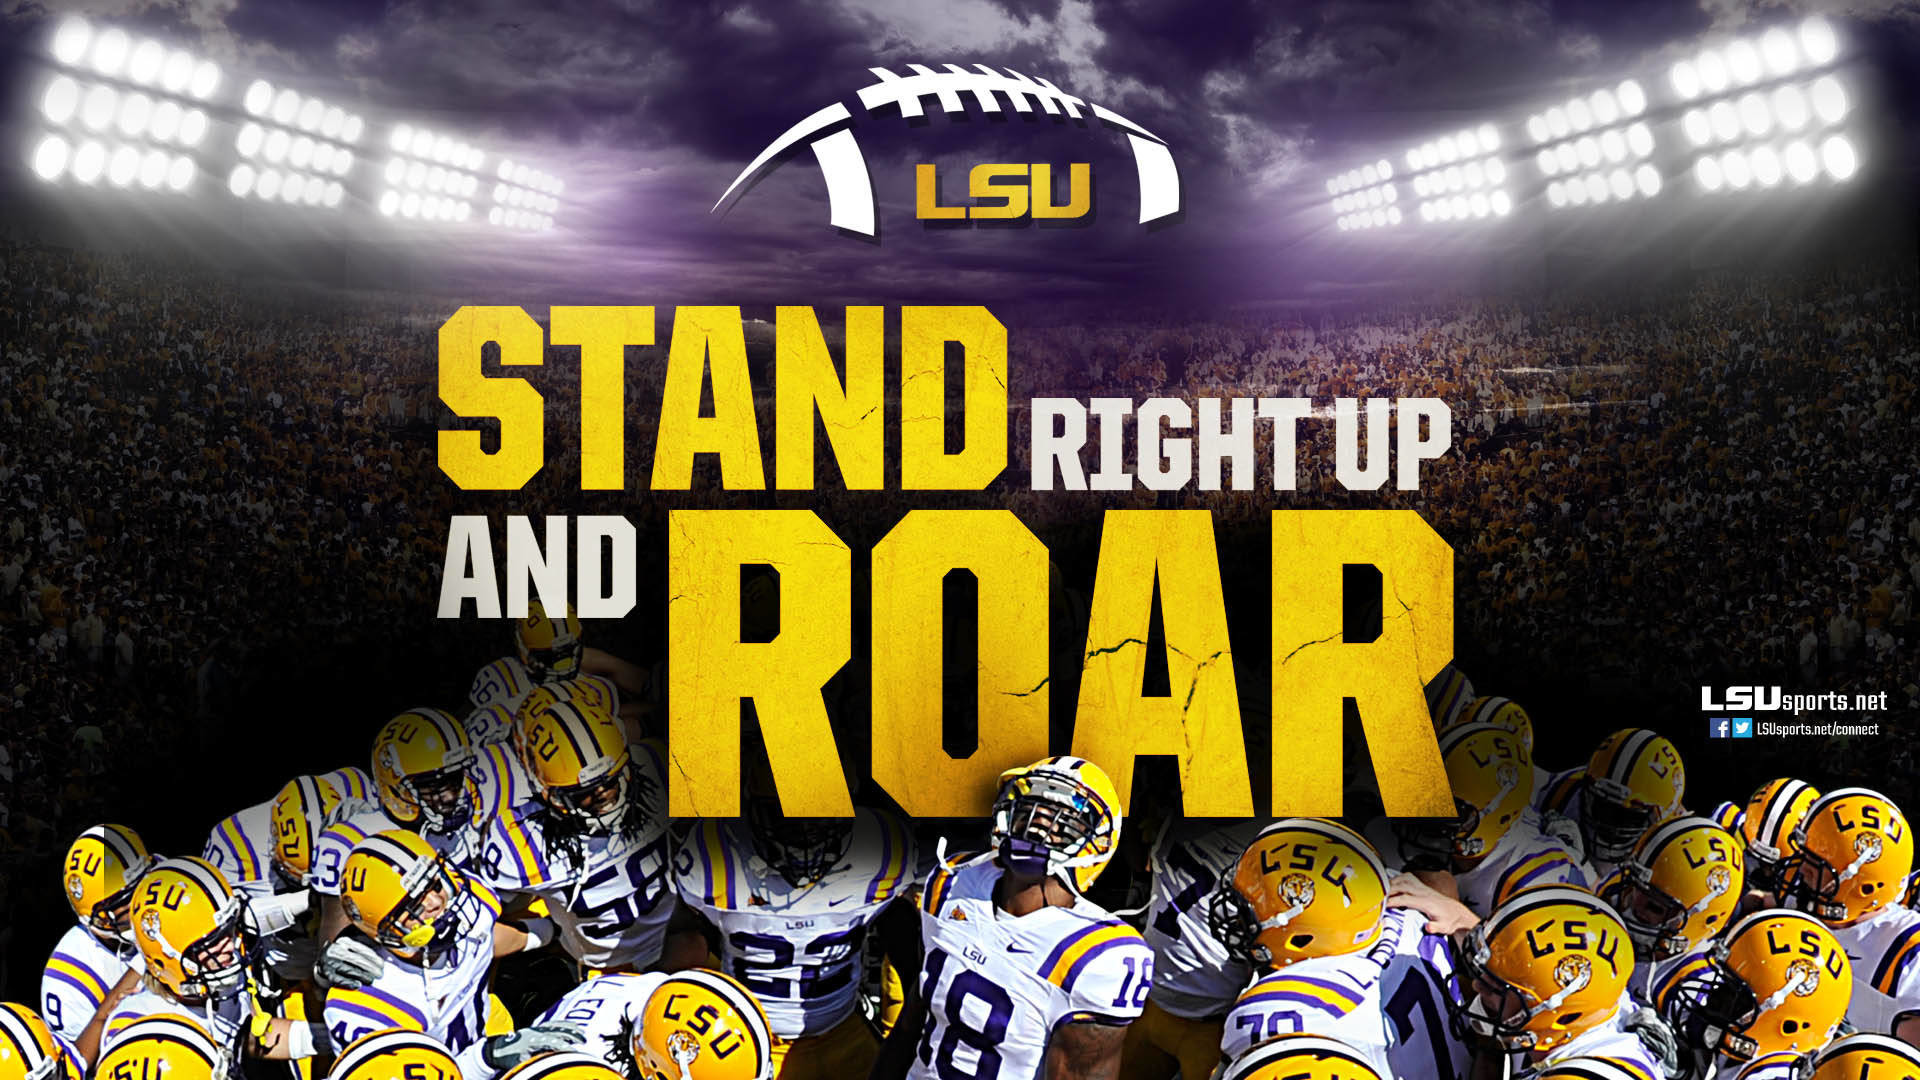 Lsu (64+ HD images) Wallpaper